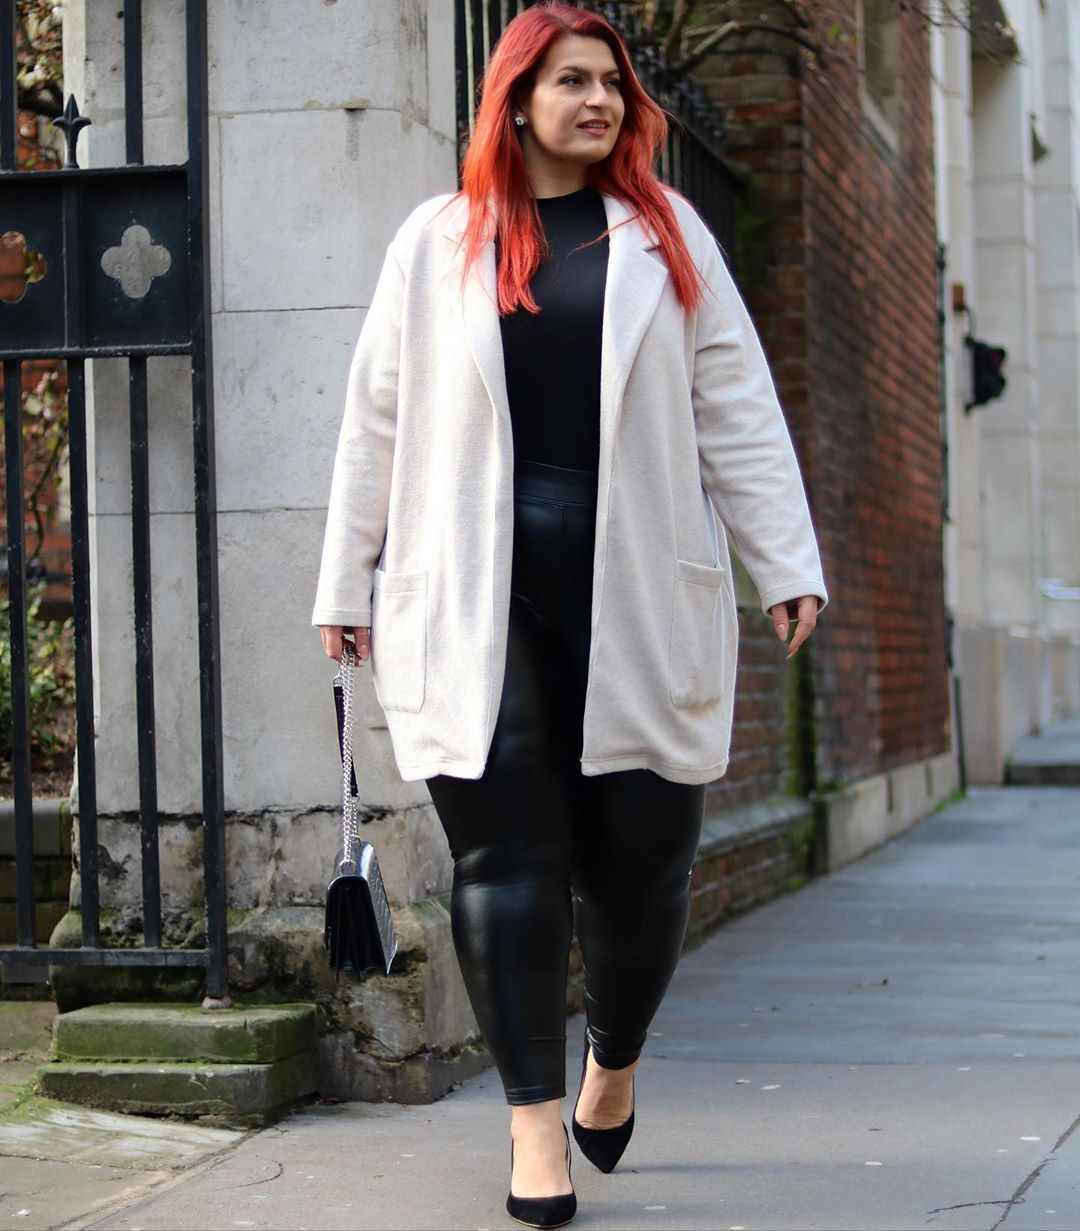 white matching outfit with overcoat, jeans, coat